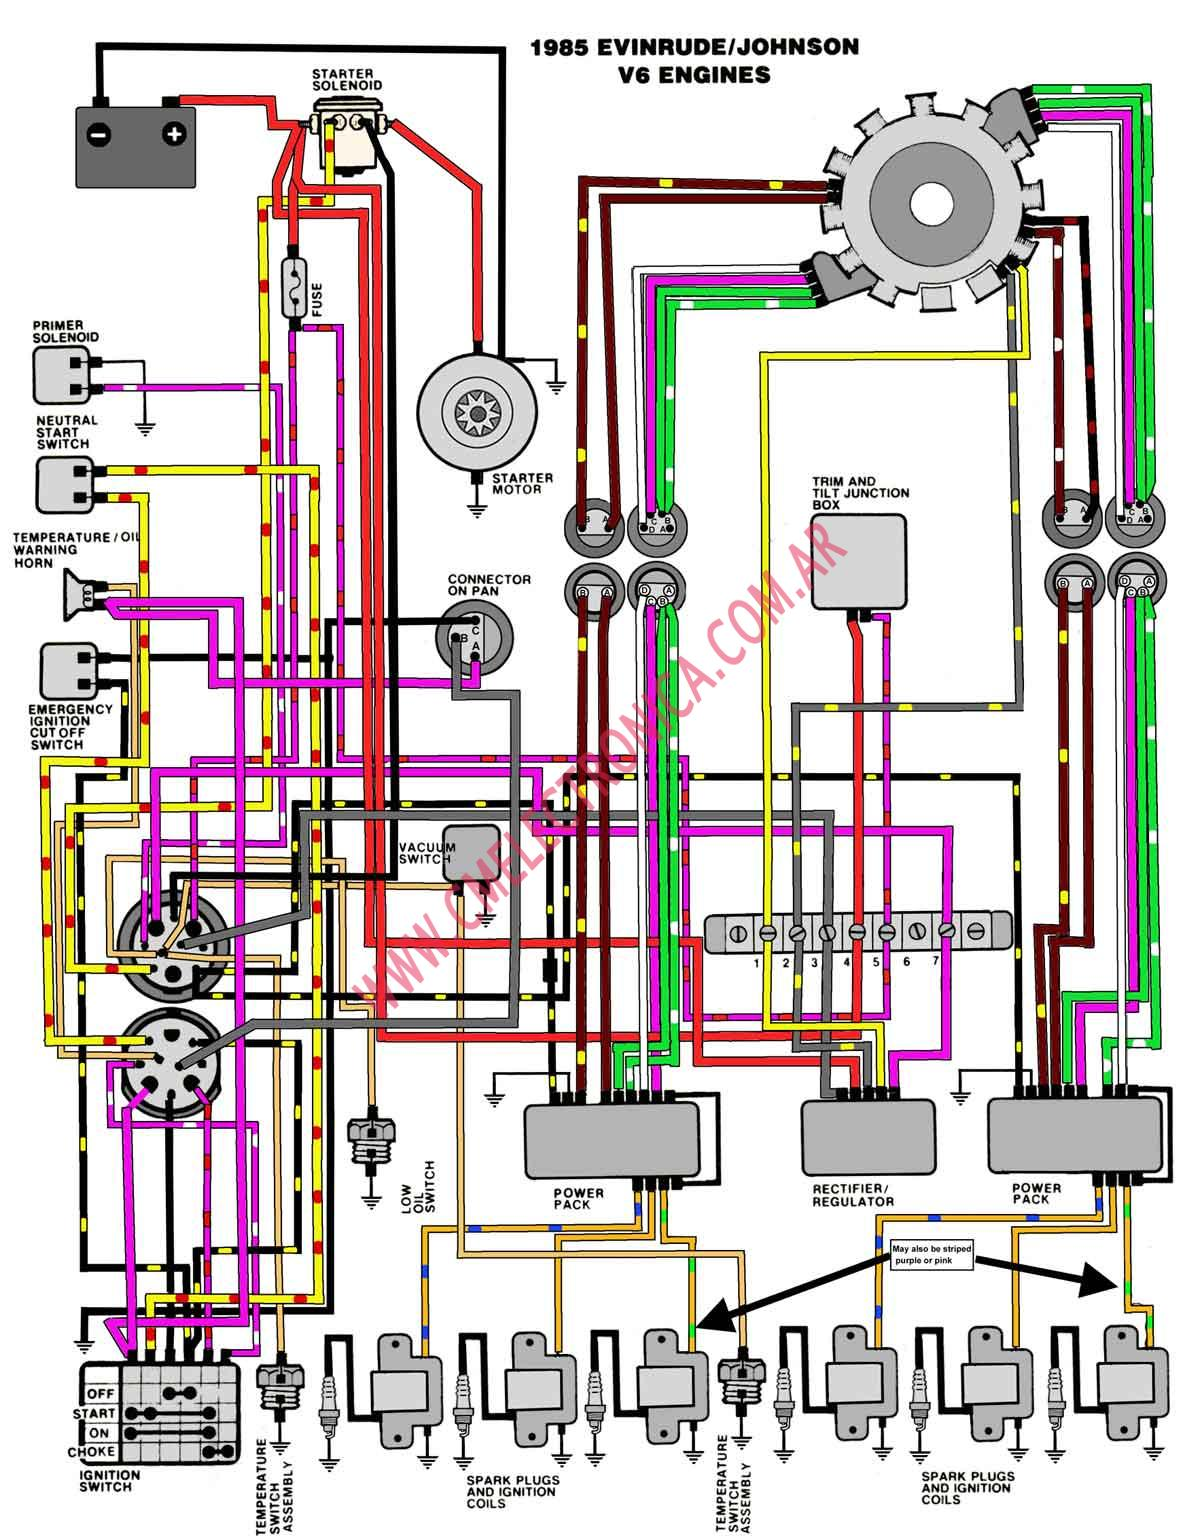 50 evinrude wiring diagram wiring library 1996 Ranger Wiring Diagram 50 hp evinrude wiring diagram 1996 images gallery diagrama evinrude johnson 85 v6